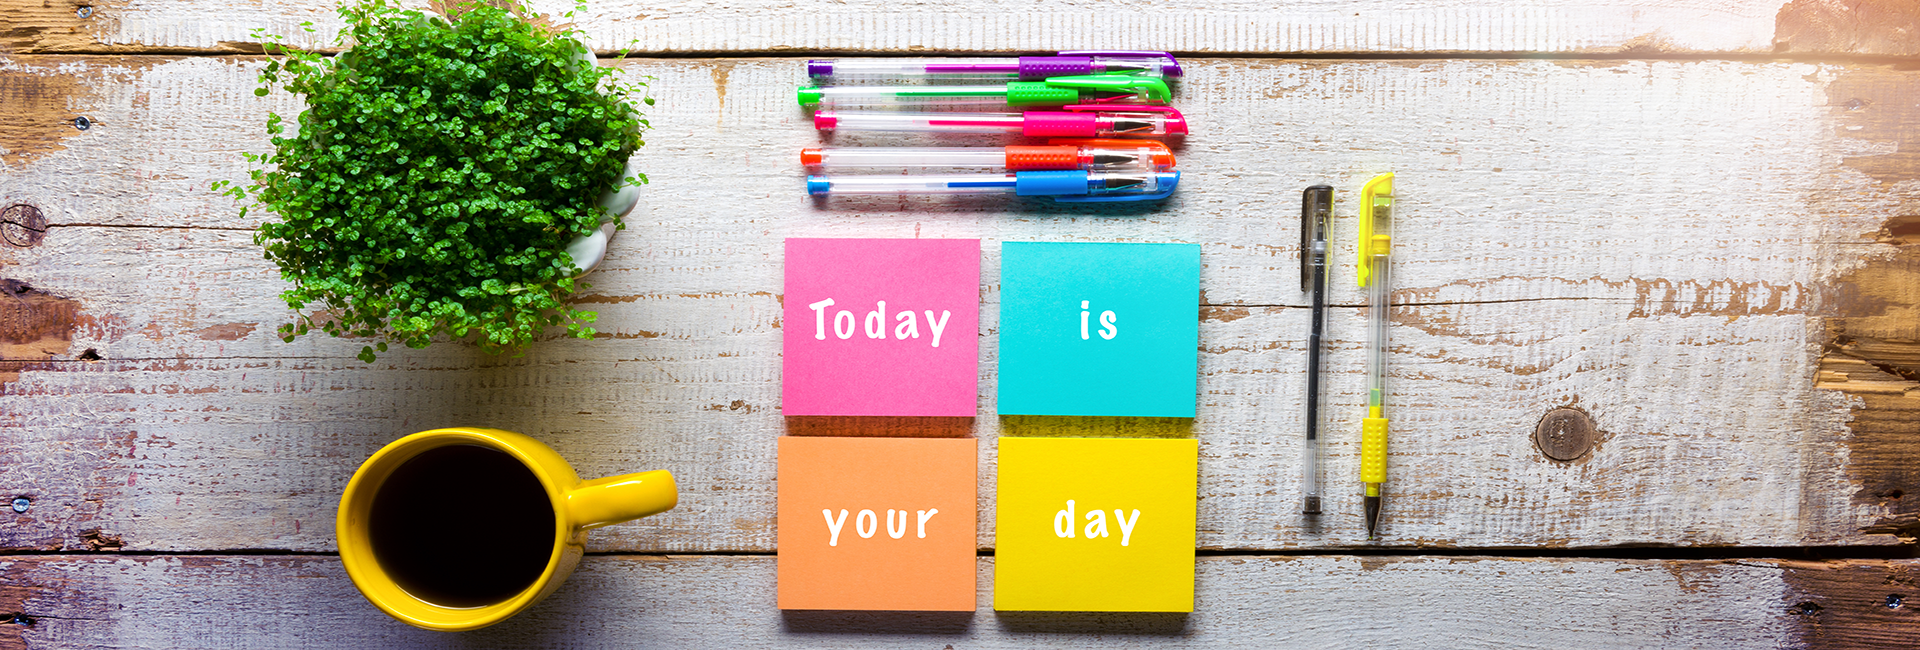 Today is your day stock photo